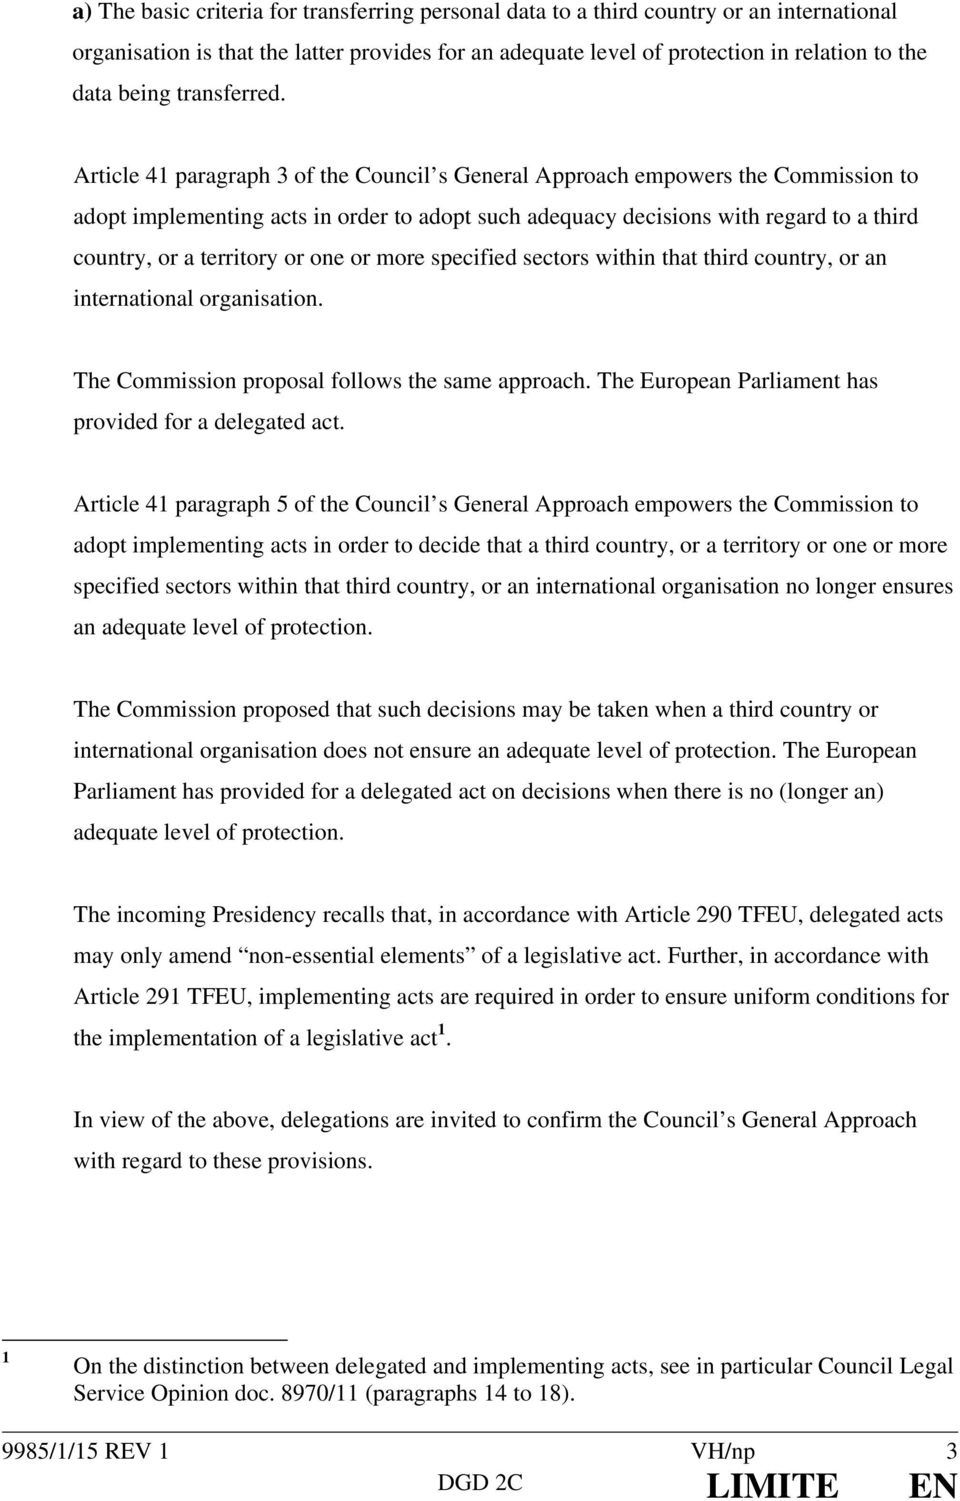 Article 41 paragraph 3 of the Council s General Approach empowers the Commission to adopt implementing acts in order to adopt such adequacy decisions with regard to a third country, or a territory or